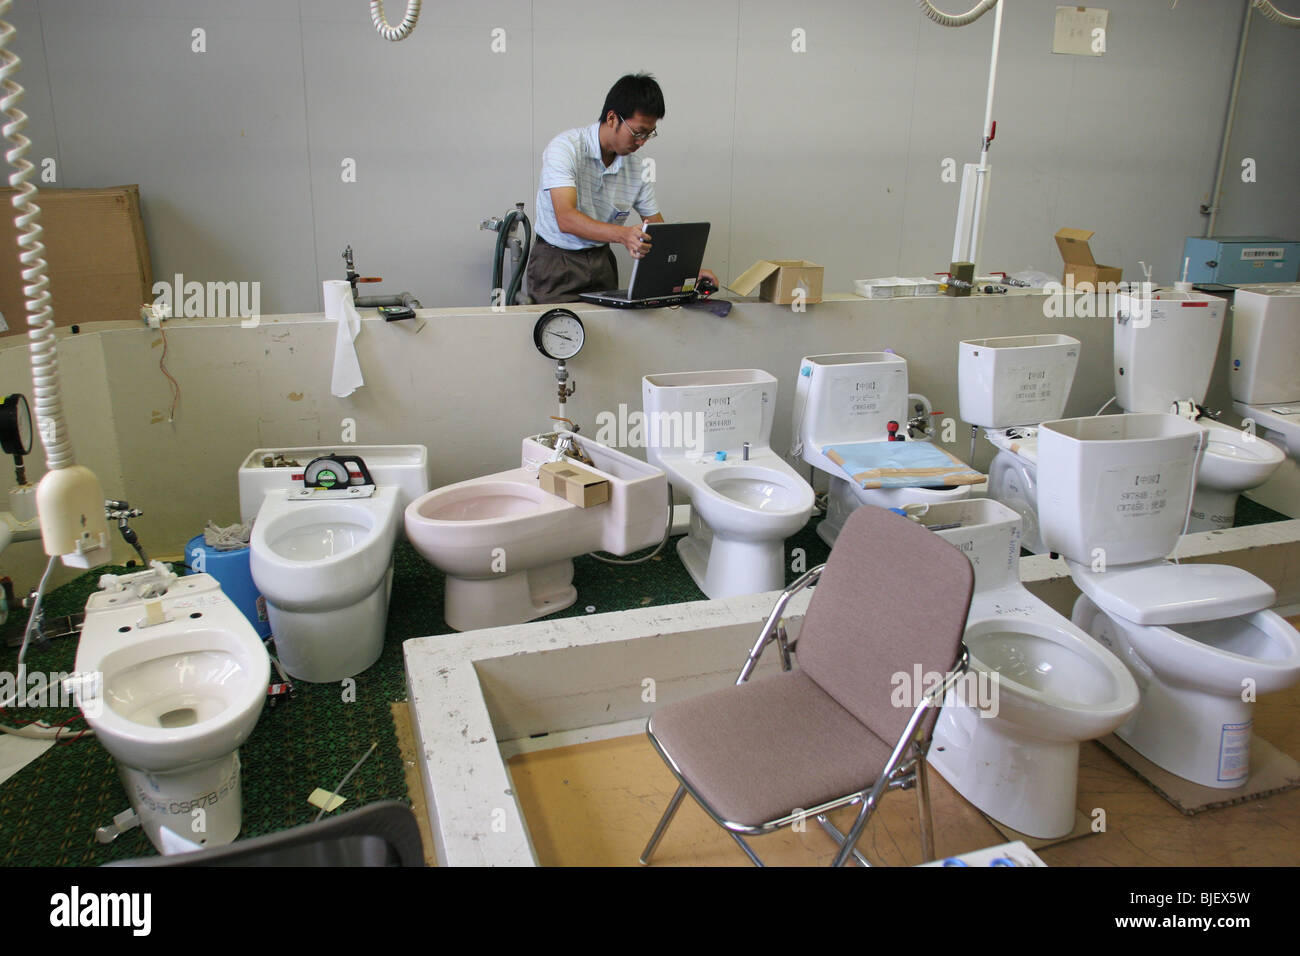 An employee checks the water functions of various types of toilets ...